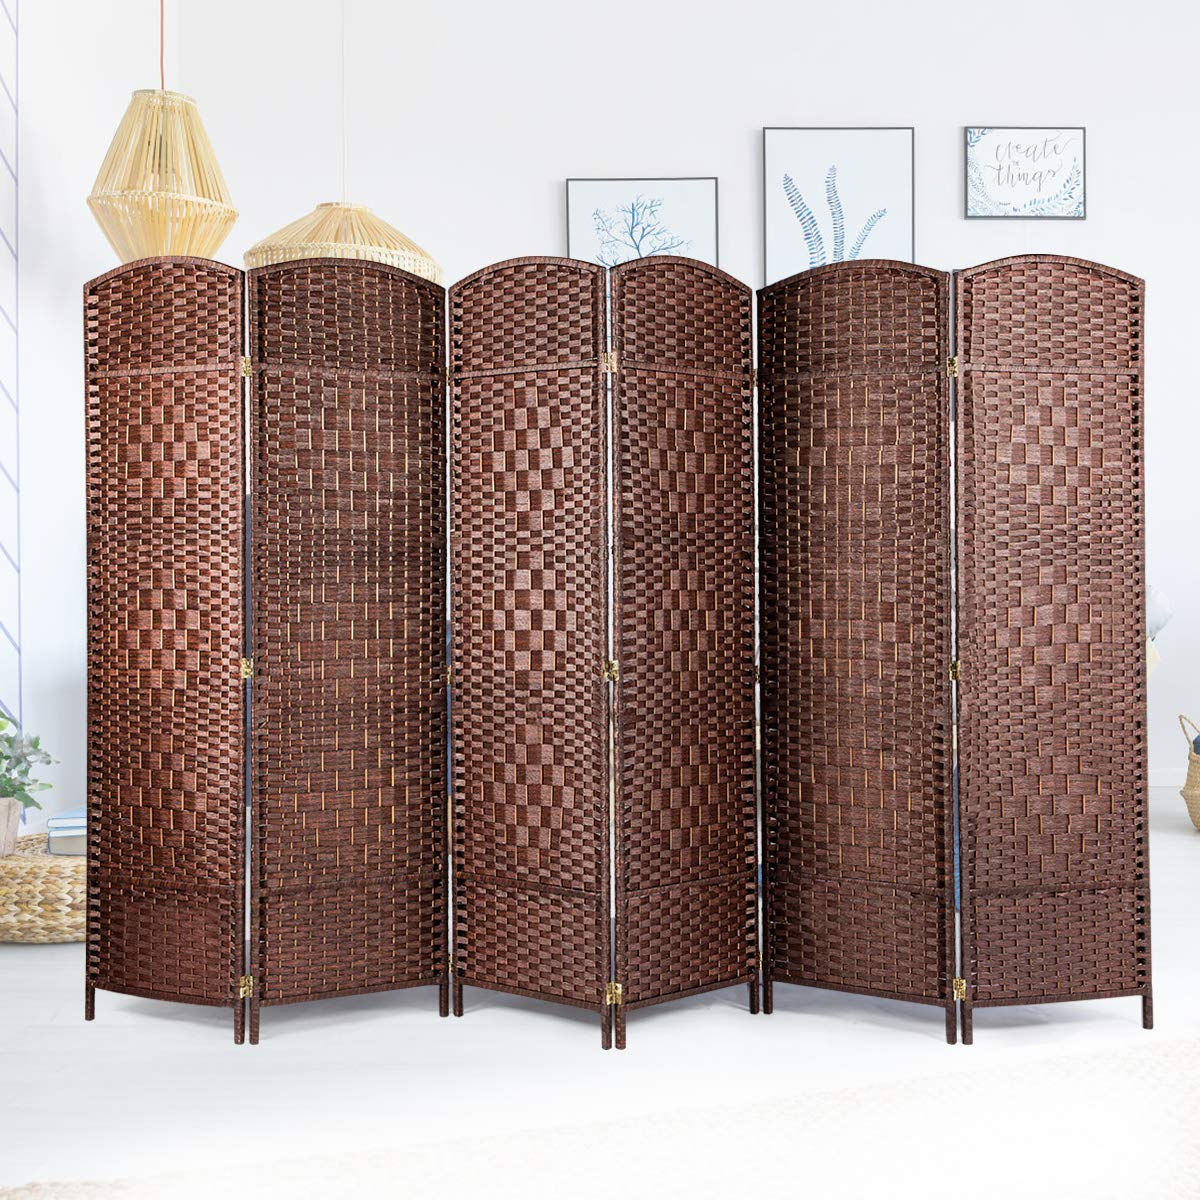 U-MAX Room Divider,6 FT Tall Weave Fiber Room Divider,Double Hinged,6 Panel Room Divider & Folding Privacy Screens, Freestanding Brown Room Dividers by U-MAX